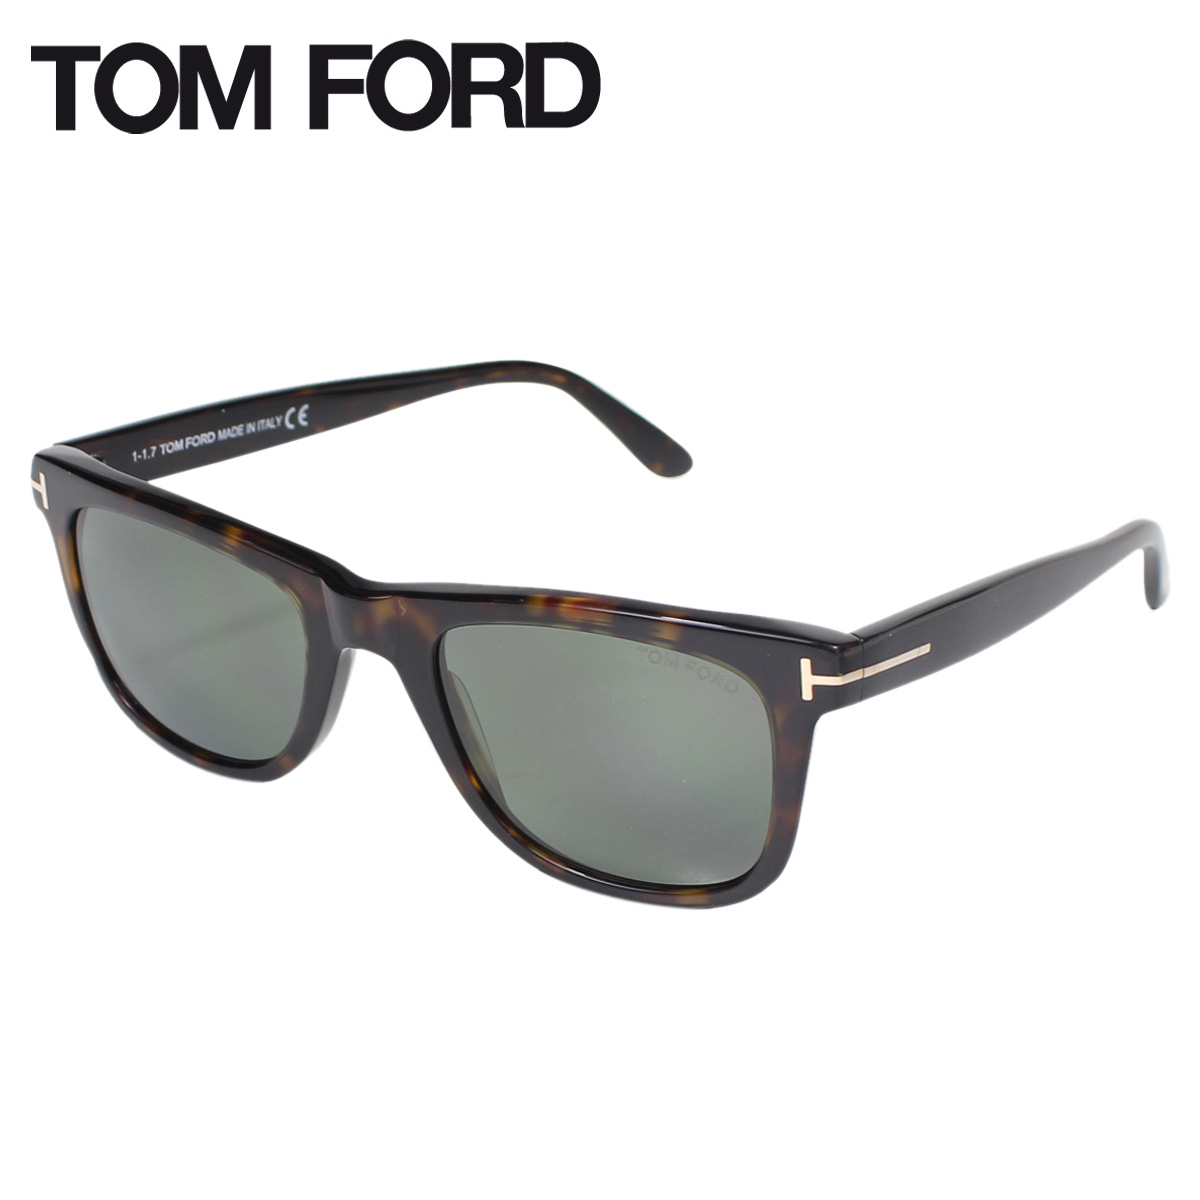 d71c638b2f5a Tom Ford TOM FORD sunglasses glasses men gap Dis eyewear FT0336 LEO SQUARE  SUNGLASSES brown  8 3 Shinnyu load